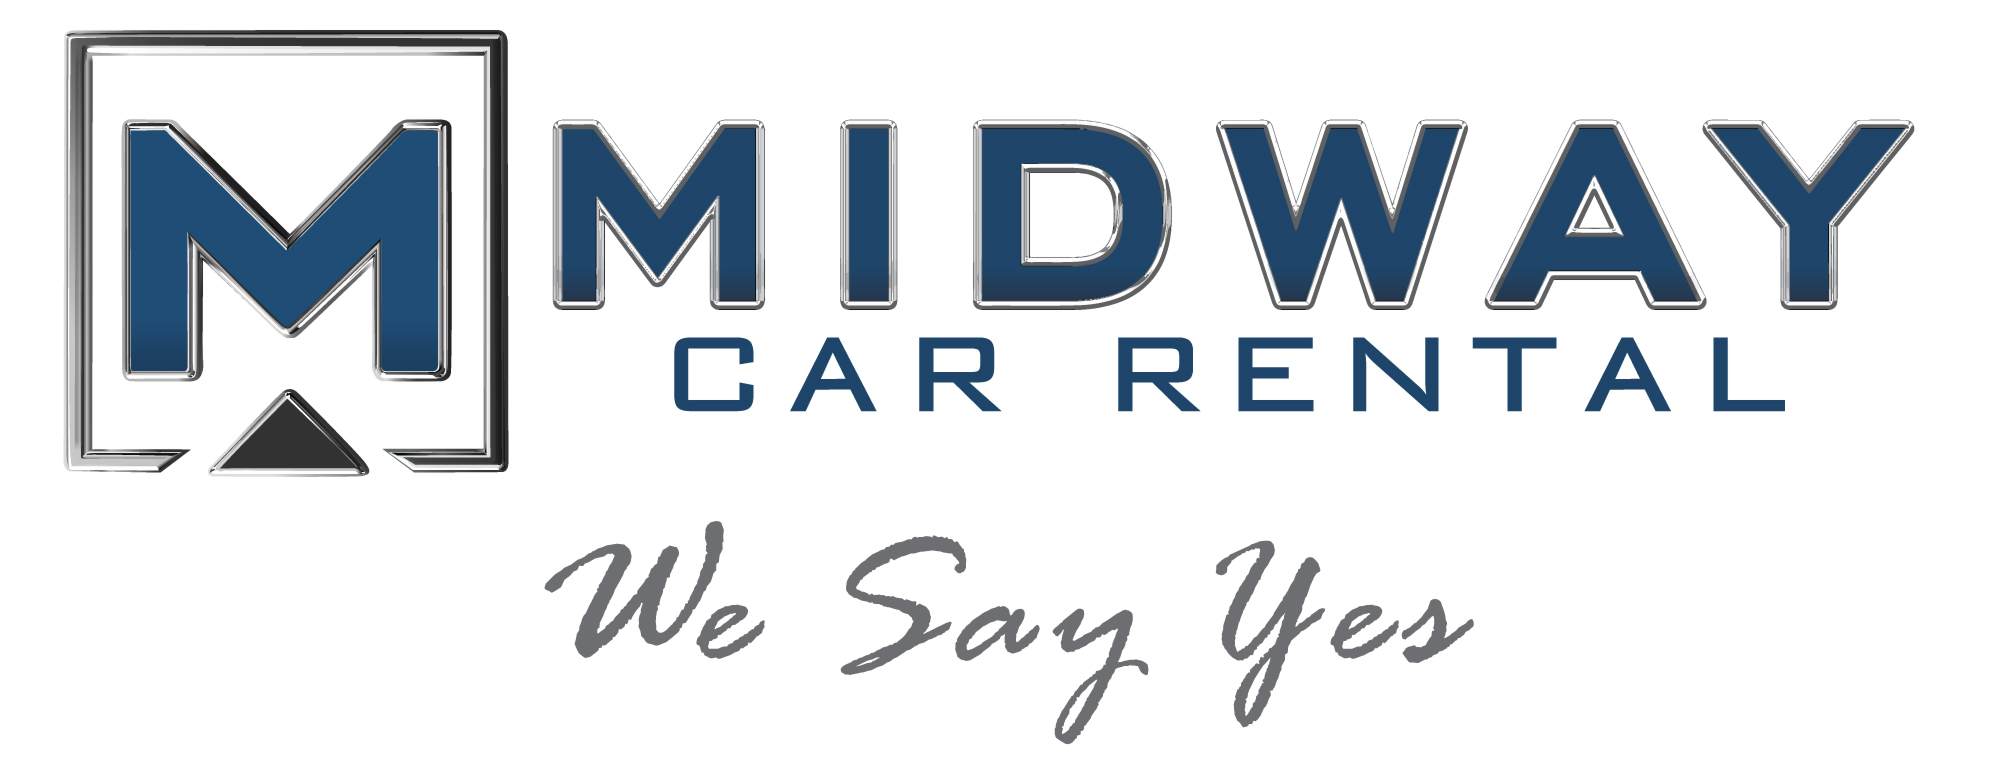 Midway Car Rental We Say Yes Logo